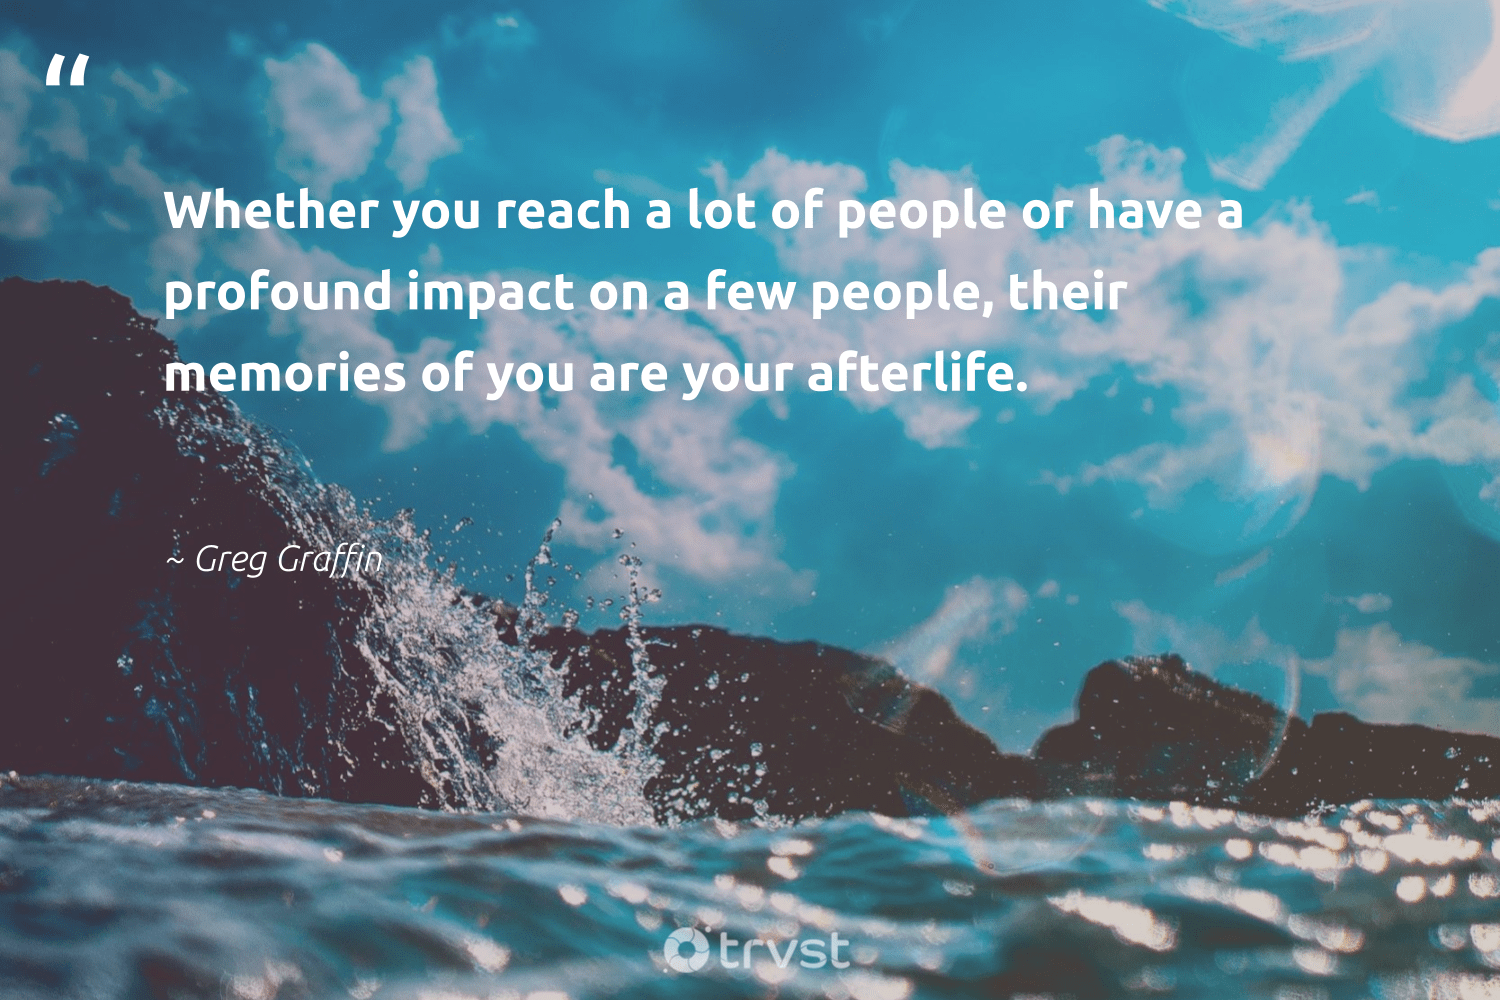 """""""Whether you reach a lot of people or have a profound impact on a few people, their memories of you are your afterlife.""""  - Greg Graffin #trvst #quotes #impact #betterplanet #planetearthfirst #socialchange #bethechange #weareallone #takeaction #ethicalbusiness #thinkgreen #giveback"""